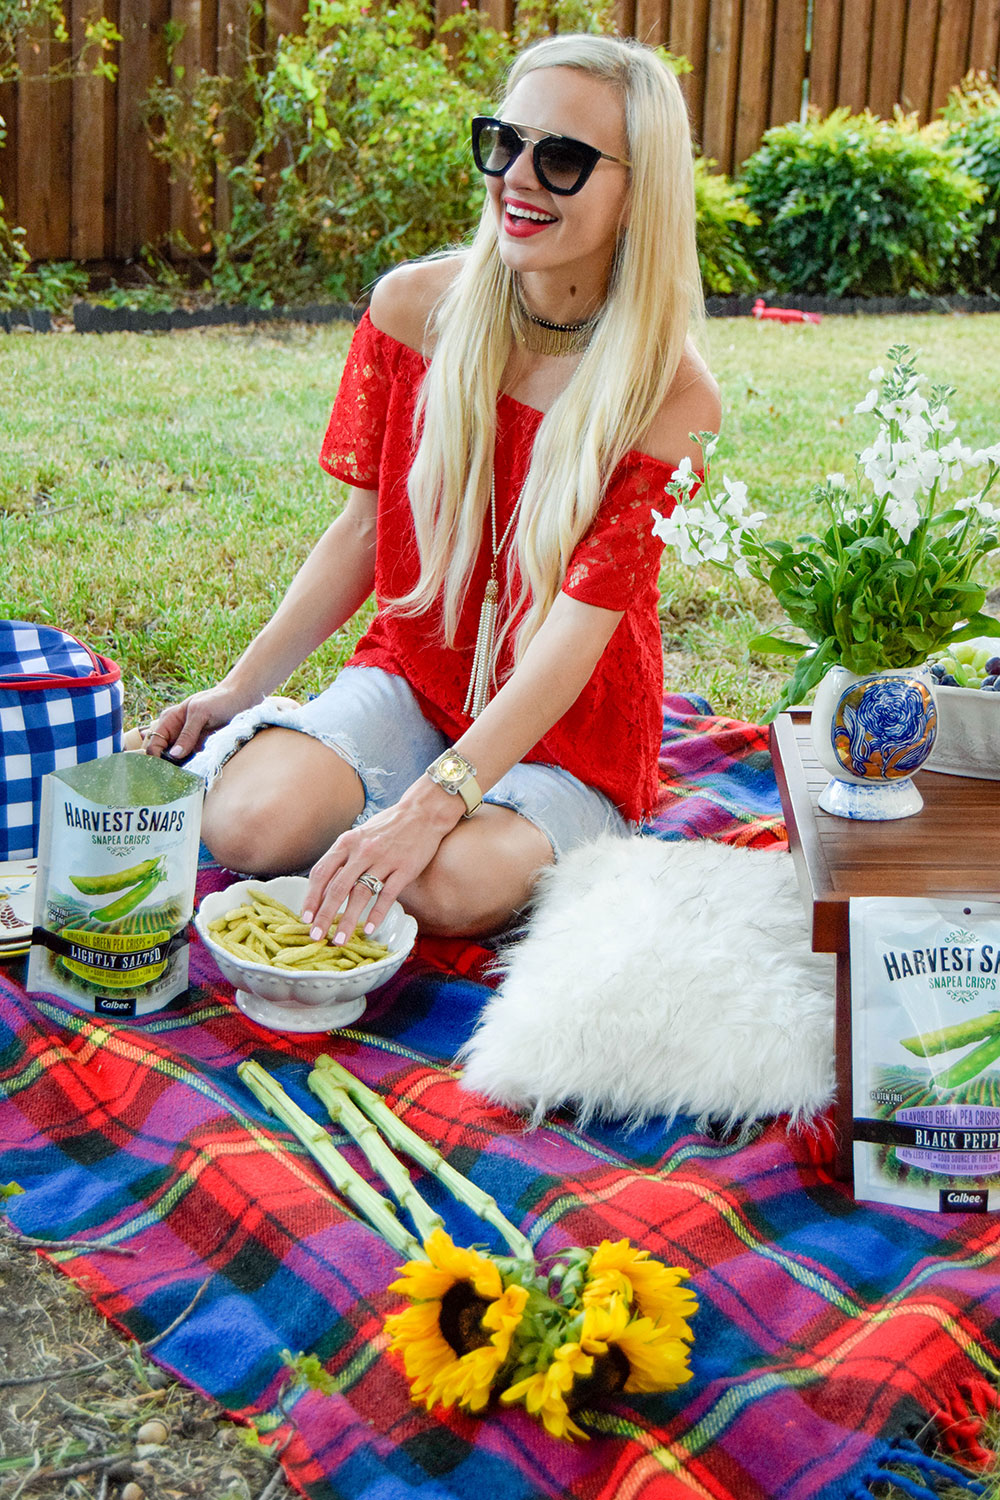 vandi-fair-dallas-fashion-blog-lauren-vandiver-southern-texas-lifestyle-fitness-blogger-healthy-snacking-snacks-harvest-snaps-snap-pea-crisps-picnic-11